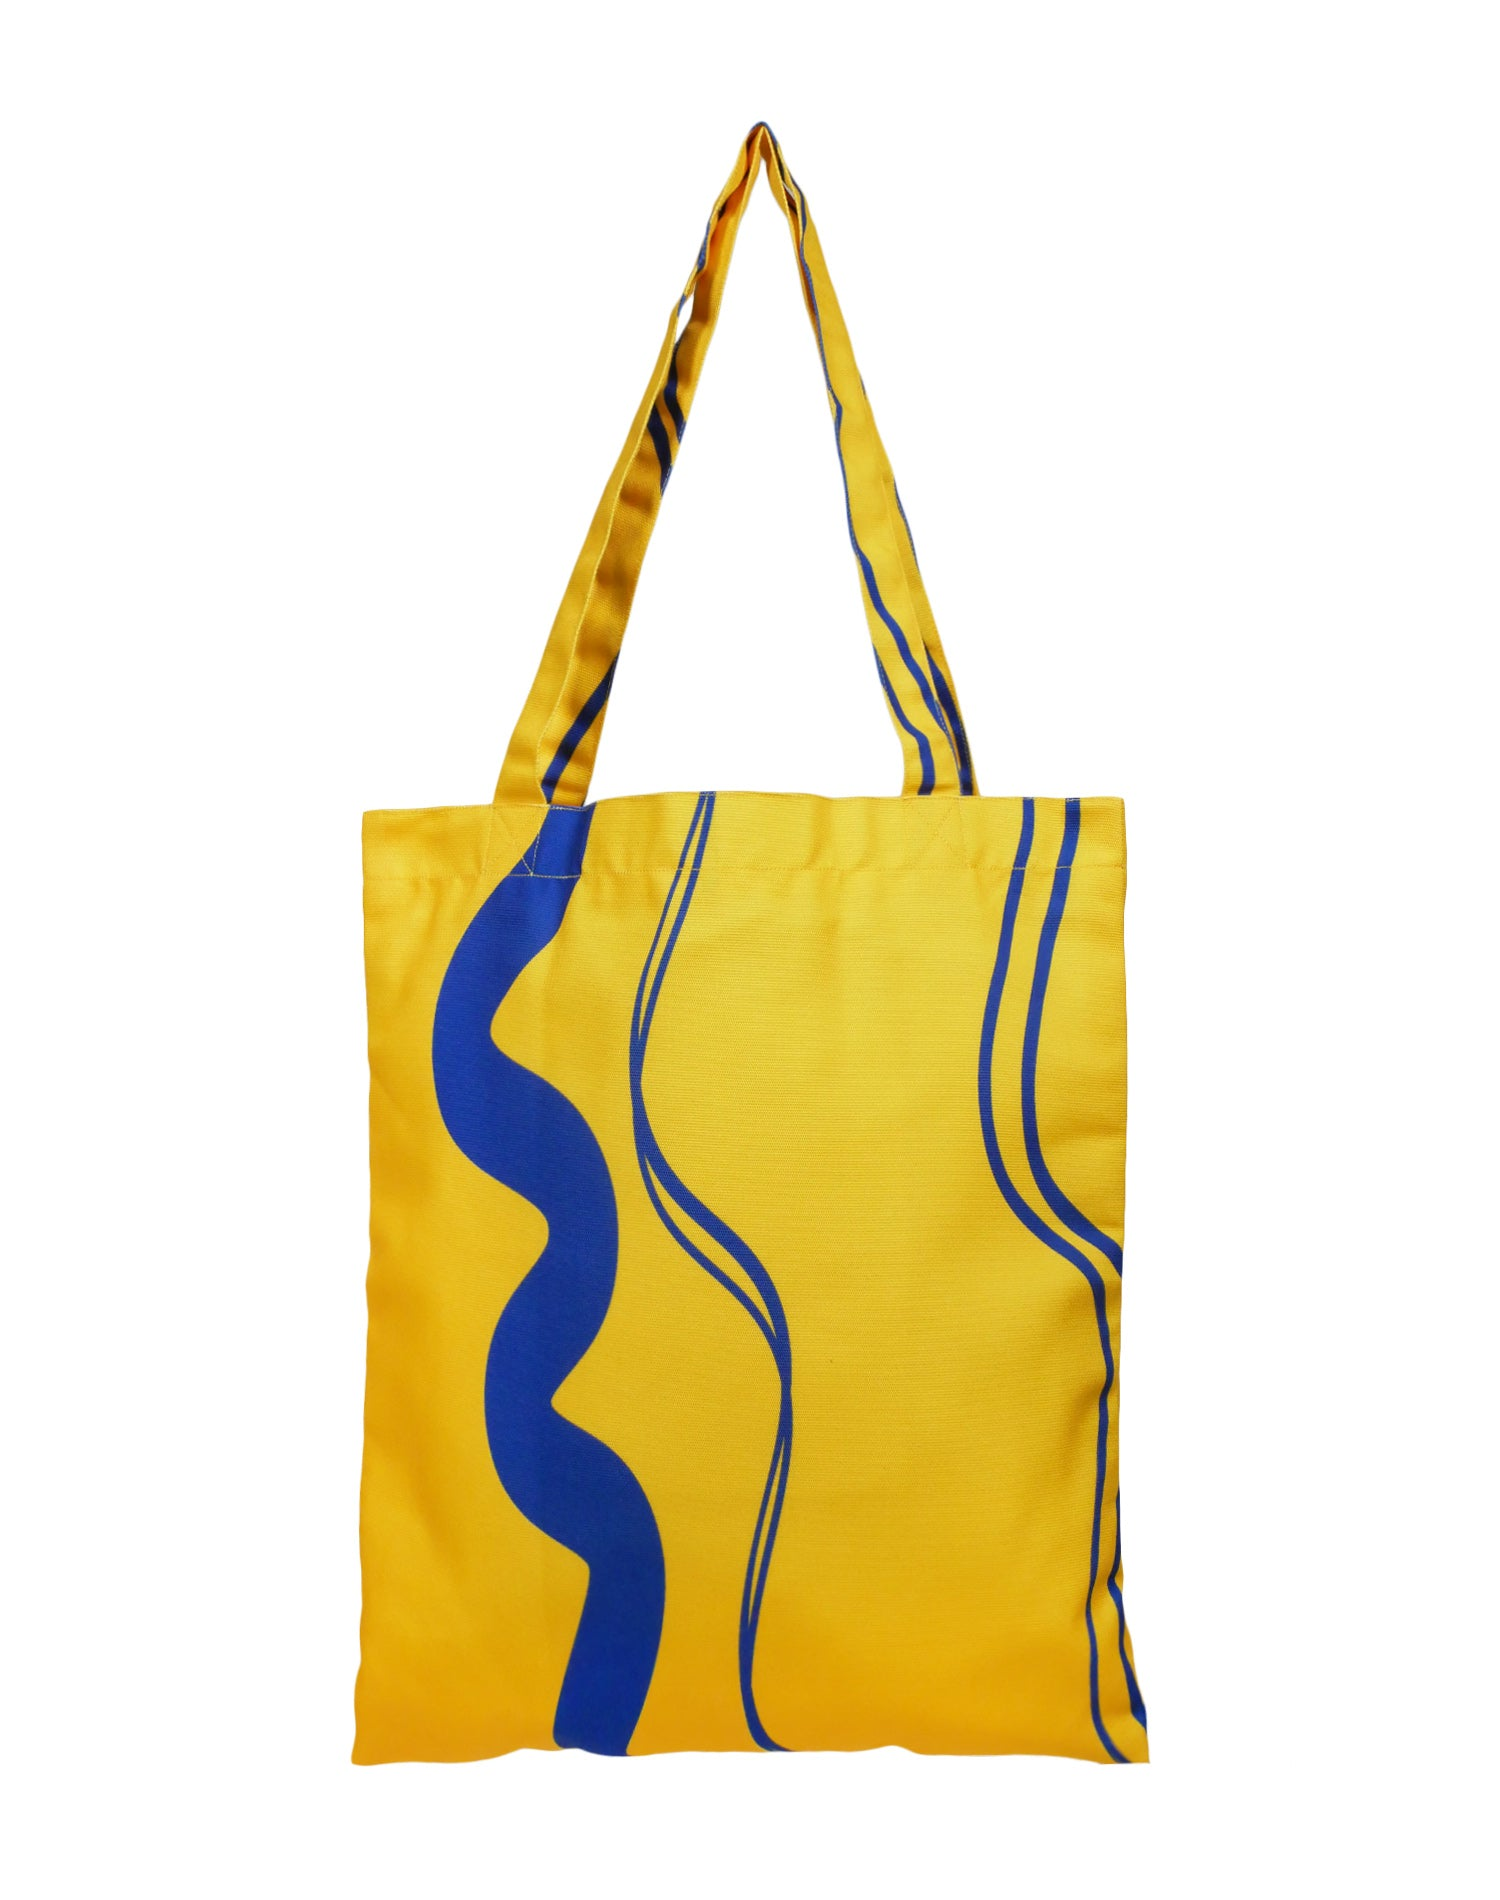 Tickled Yellow Canvas Tote Bag.黃色帆布側背袋